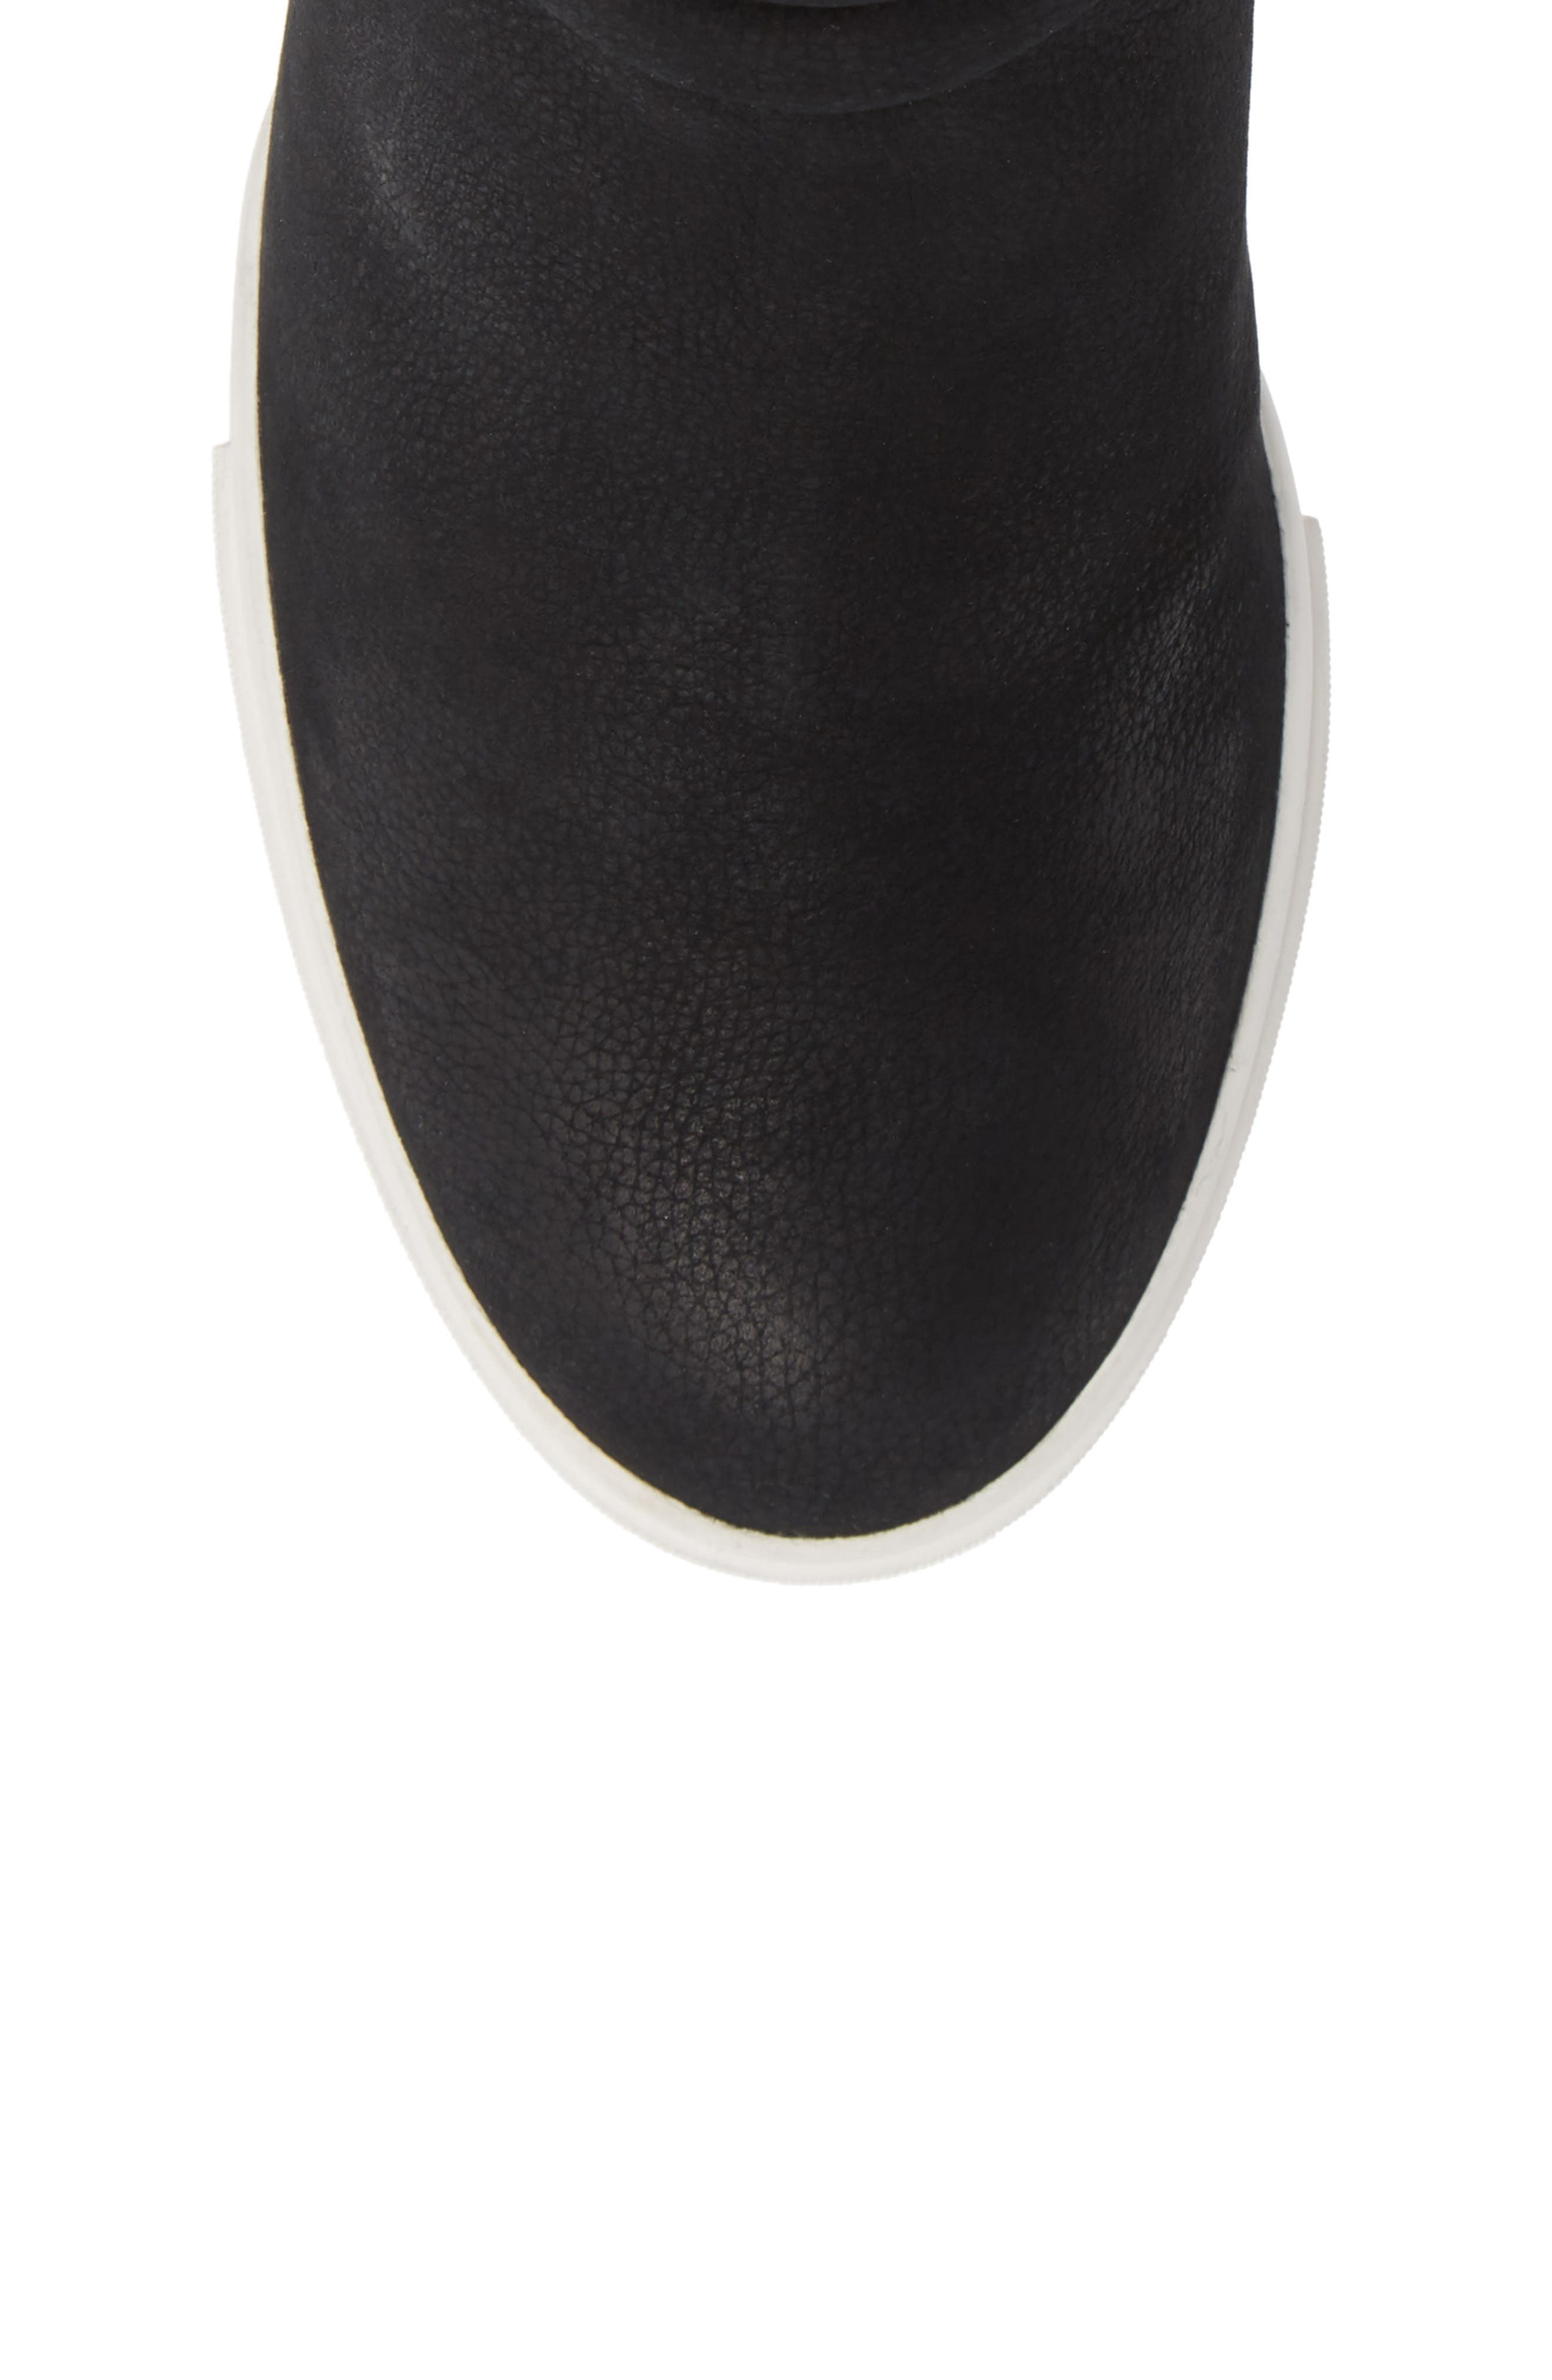 LINEA PAOLO, Flo Waterproof Wedge Bootie, Alternate thumbnail 5, color, BLACK LEATHER